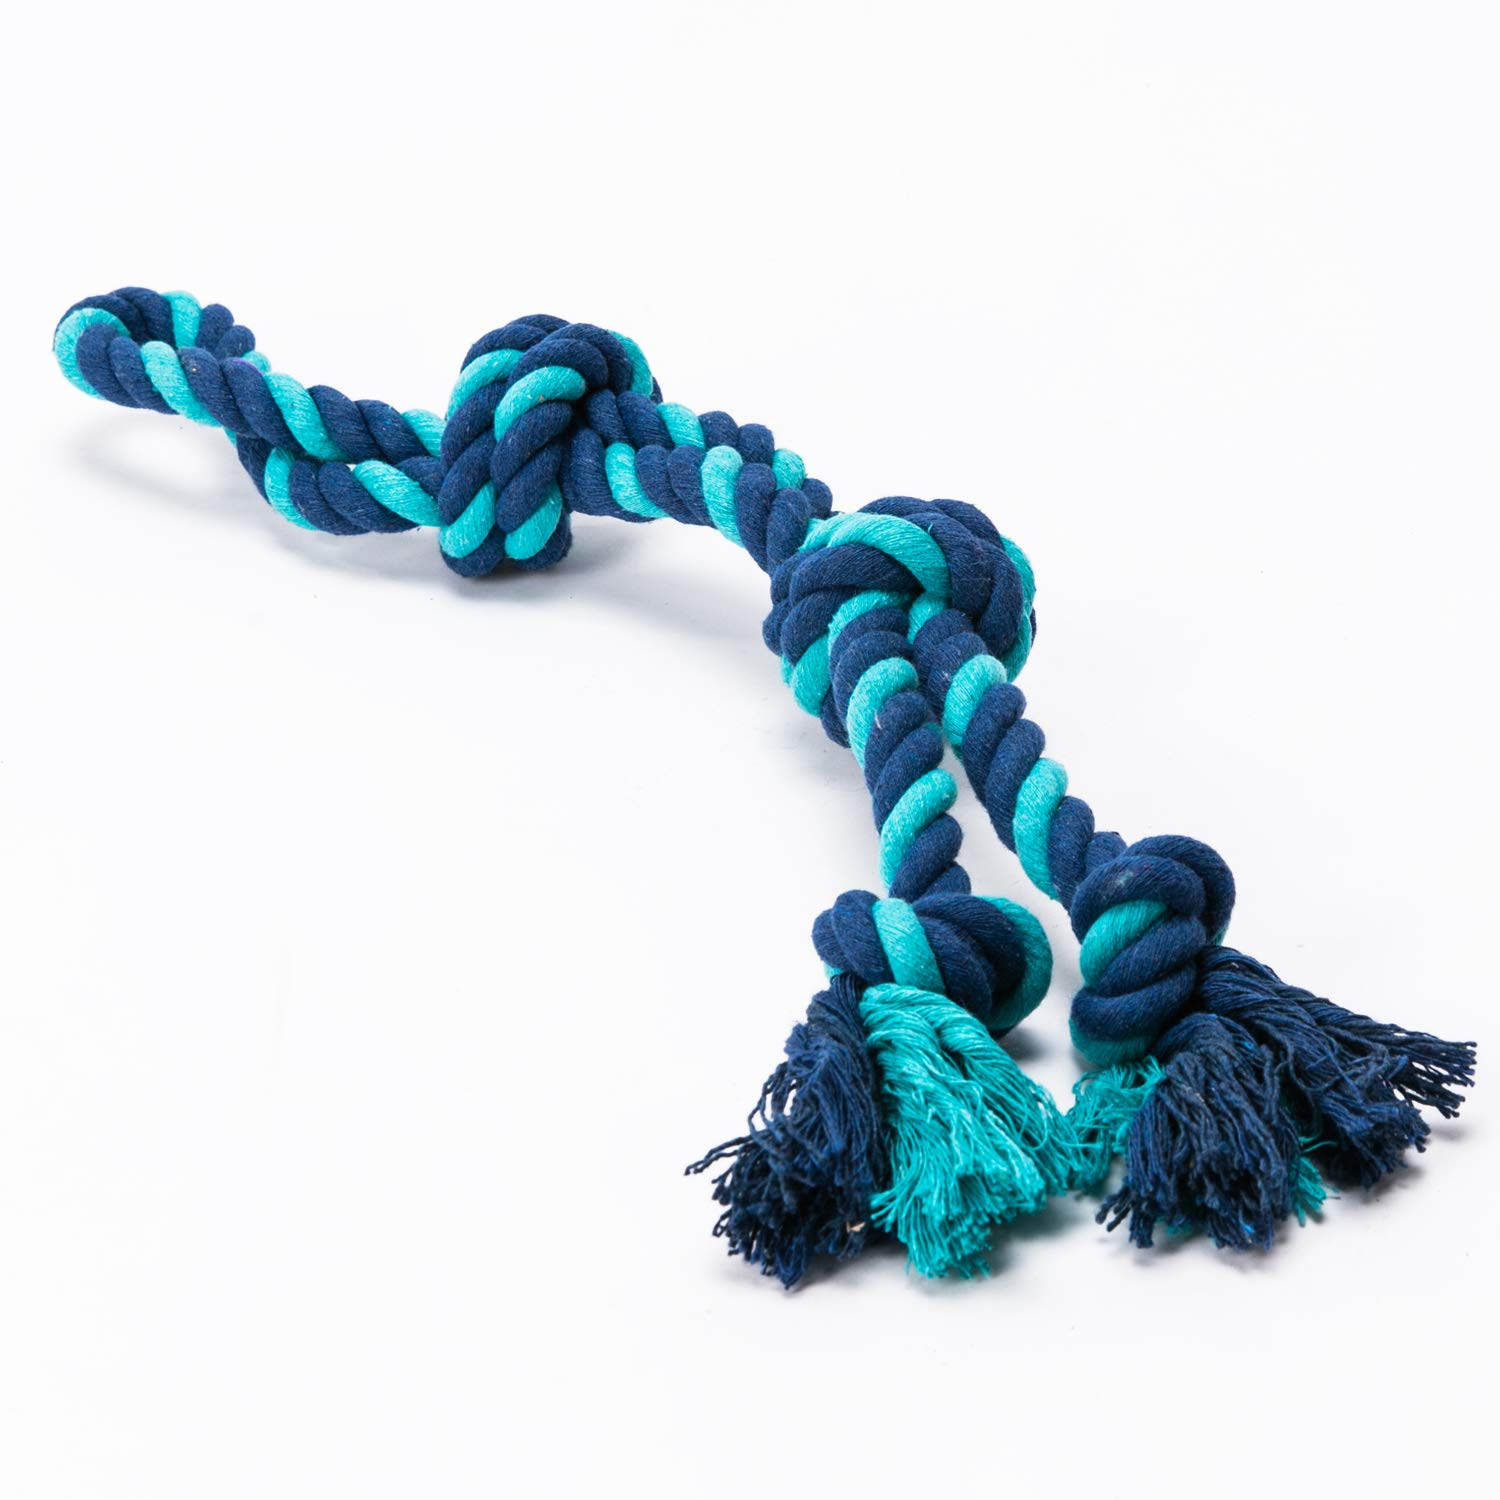 YiPet Rope Toy Dog Tug of War Interactive Play with Your Dog Chew Cotton Dental Teaser Teeth Cleaning for Medium Large Breeds, Blue